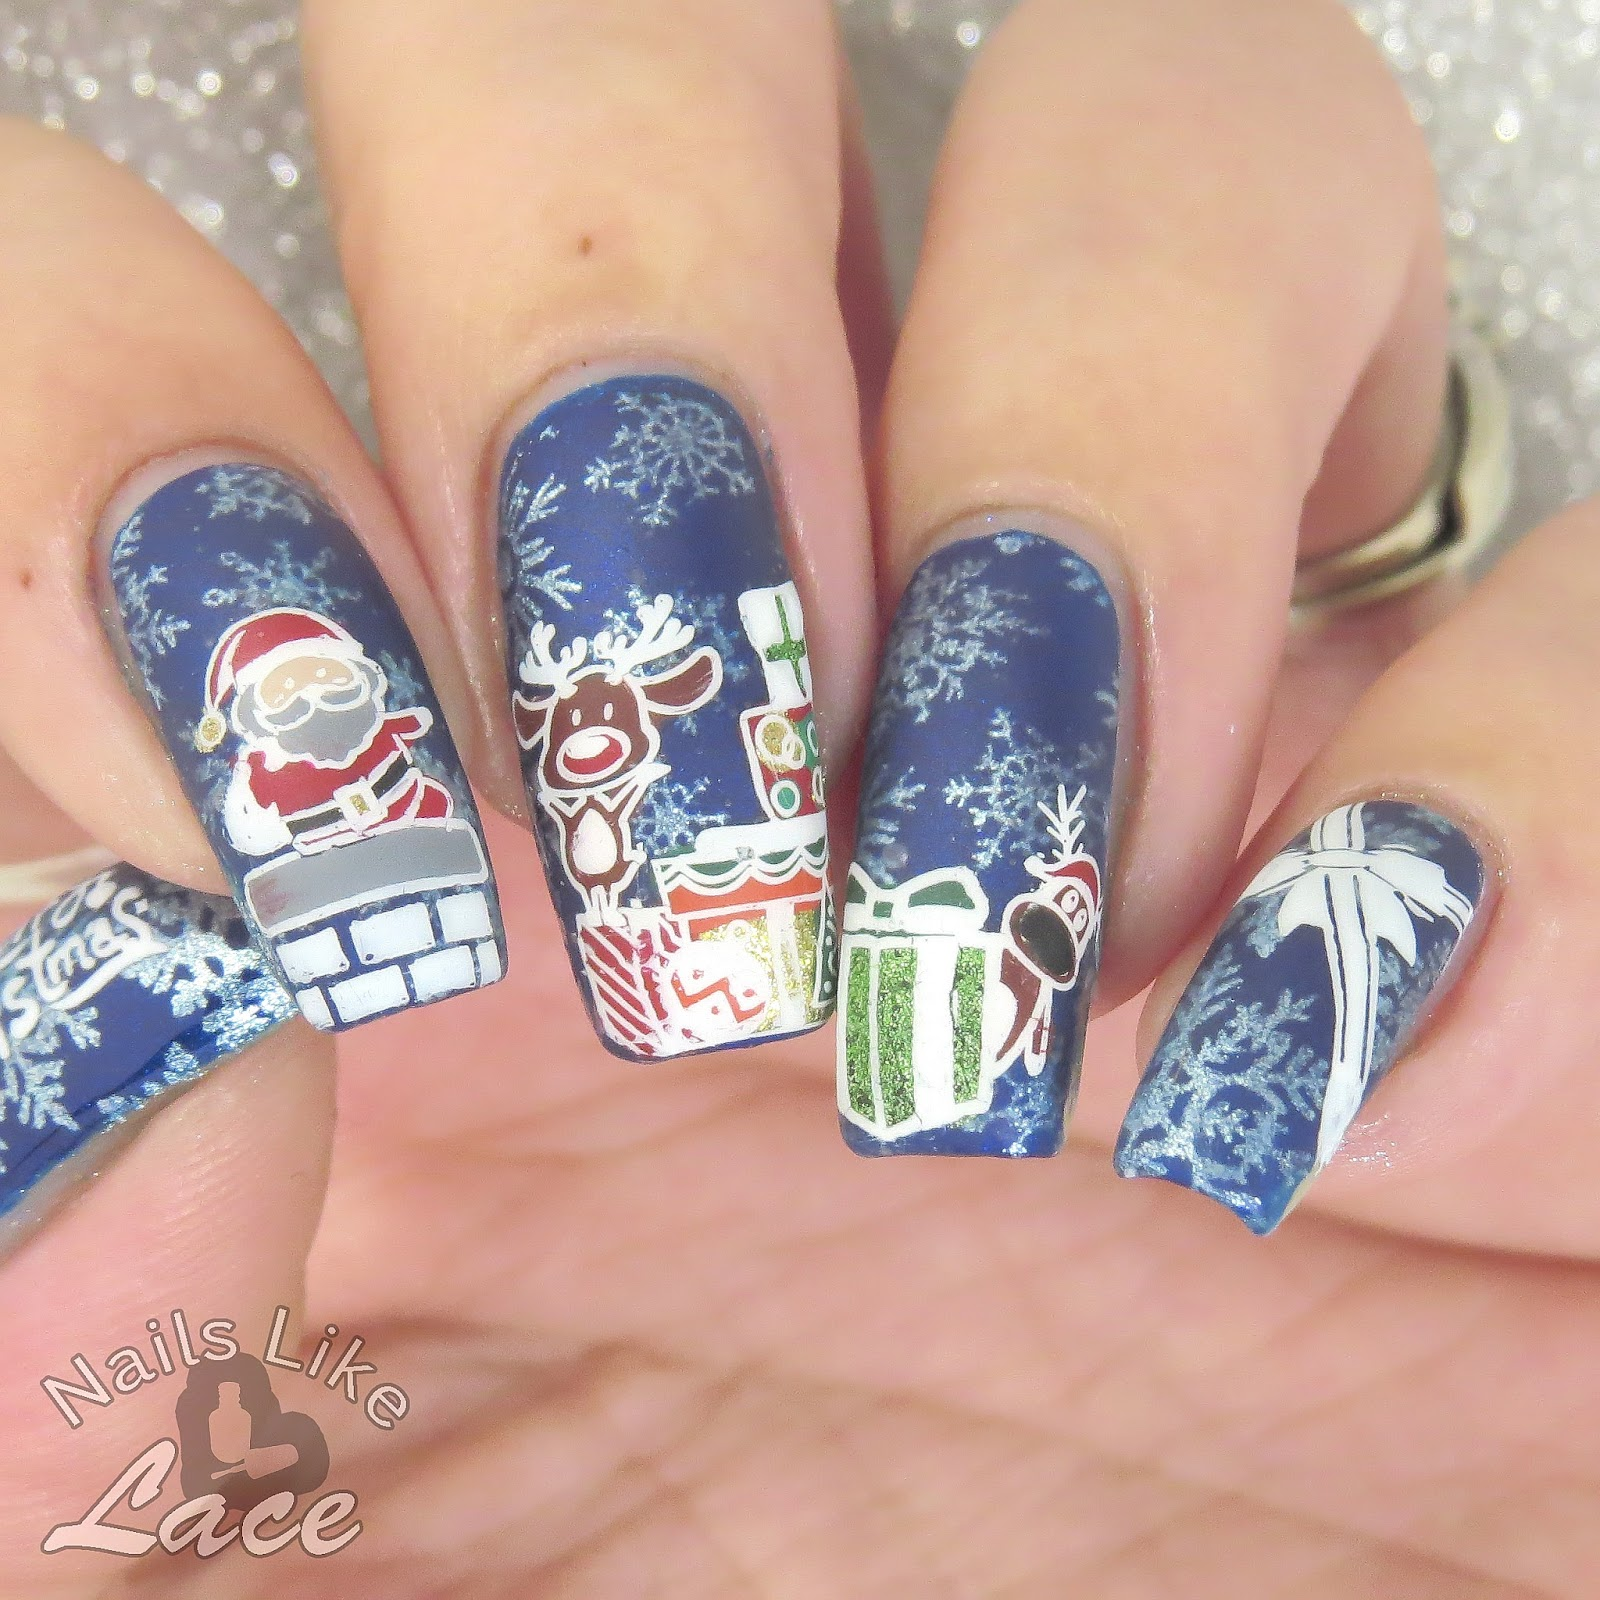 NailsLikeLace: December 2016